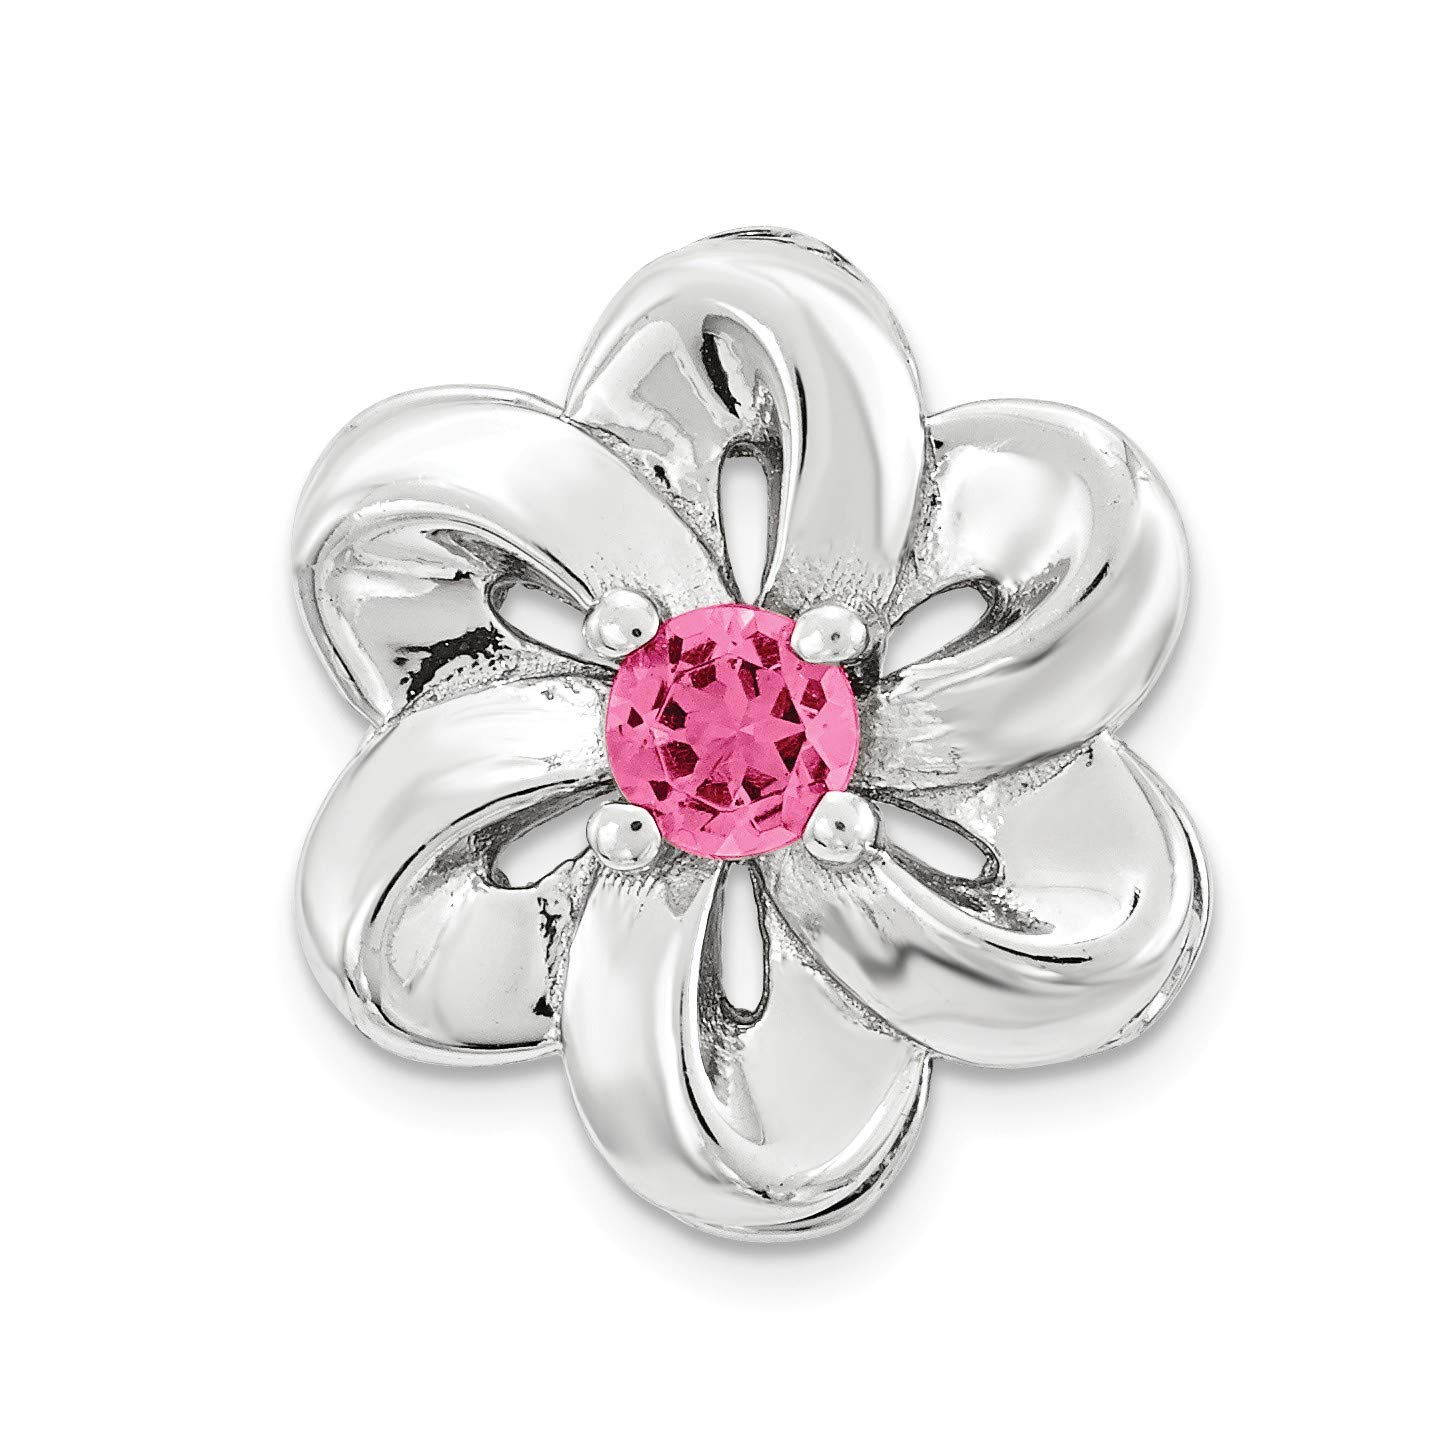 Bonyak Jewelry Sterling Silver Stack Exp Small Created Pink Sapphire Flower Chain Slide